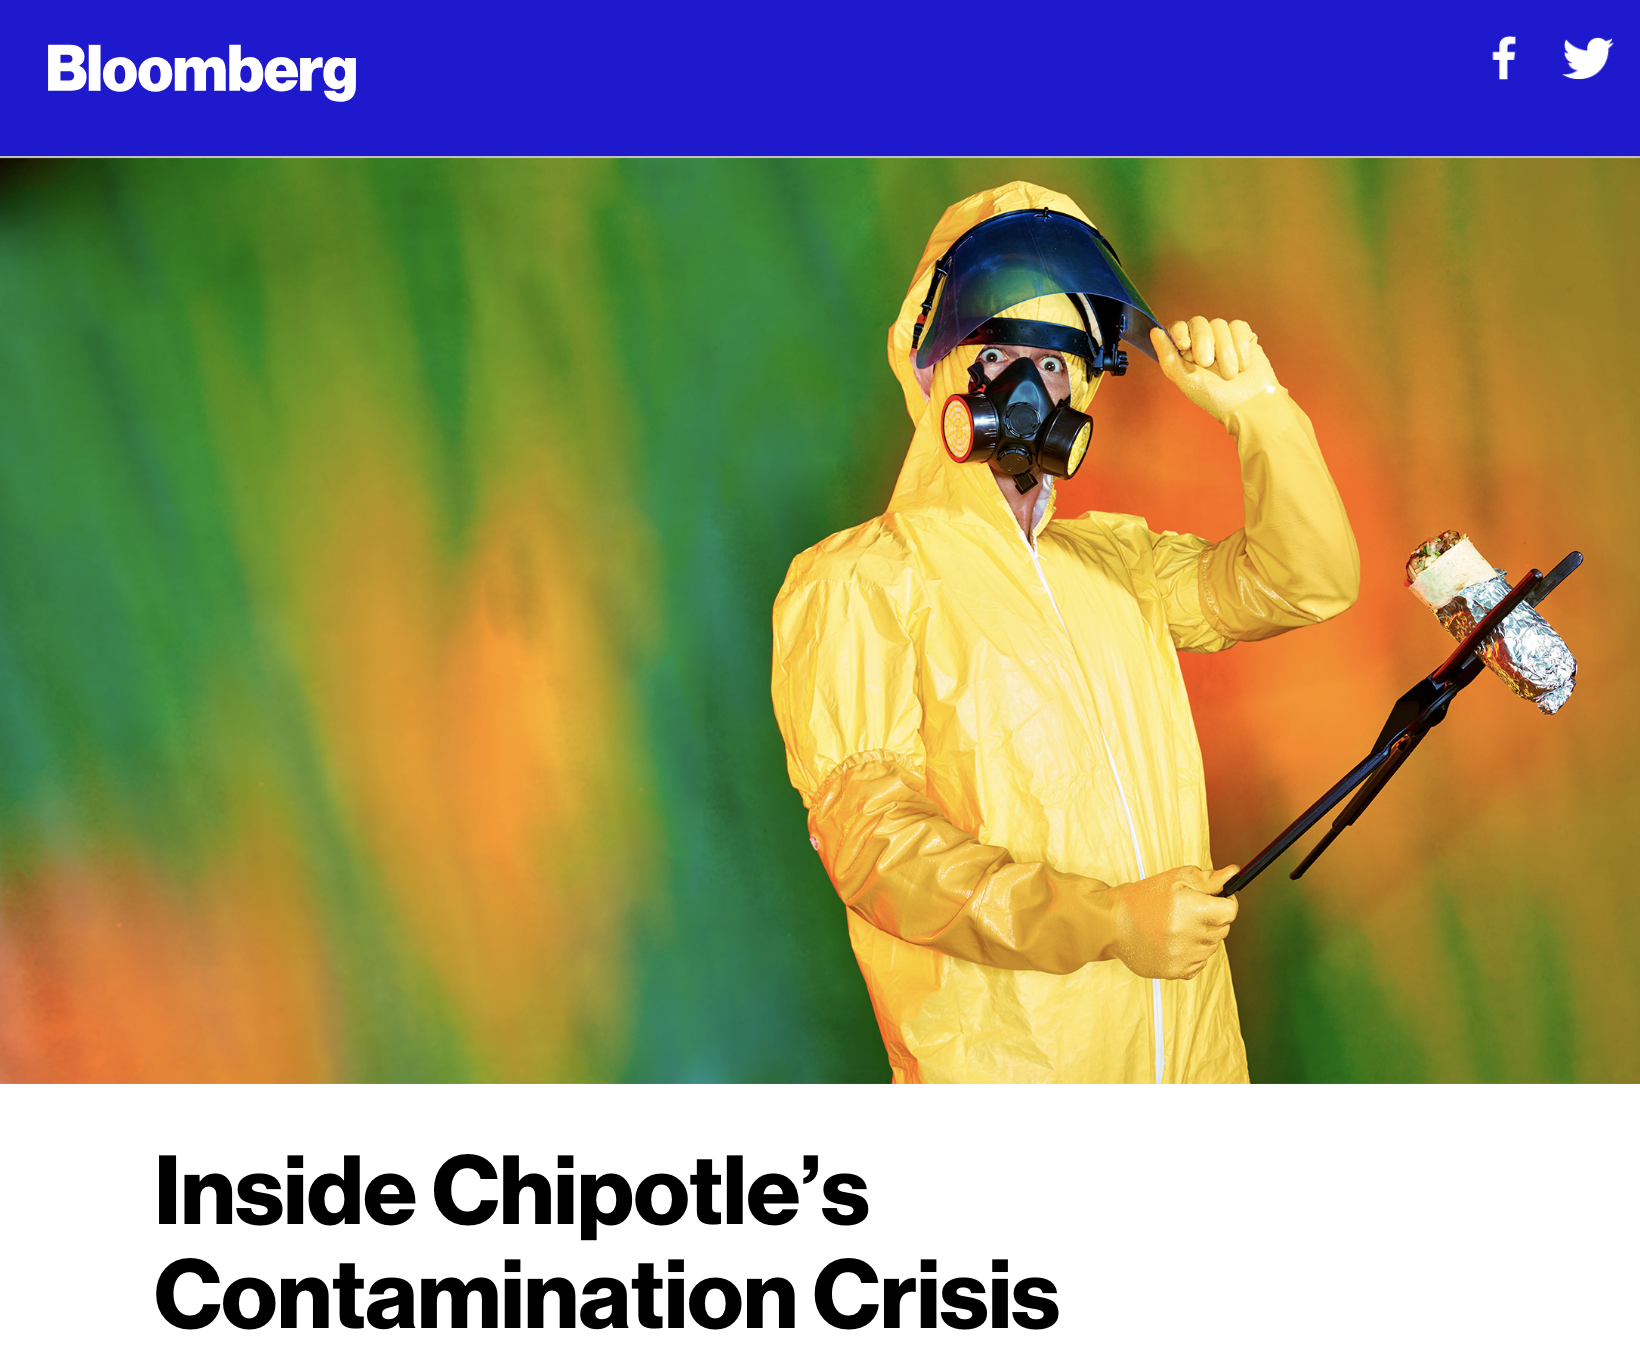 Bloomberg Inside Chipotle's Contamination Crisis Screen Capture